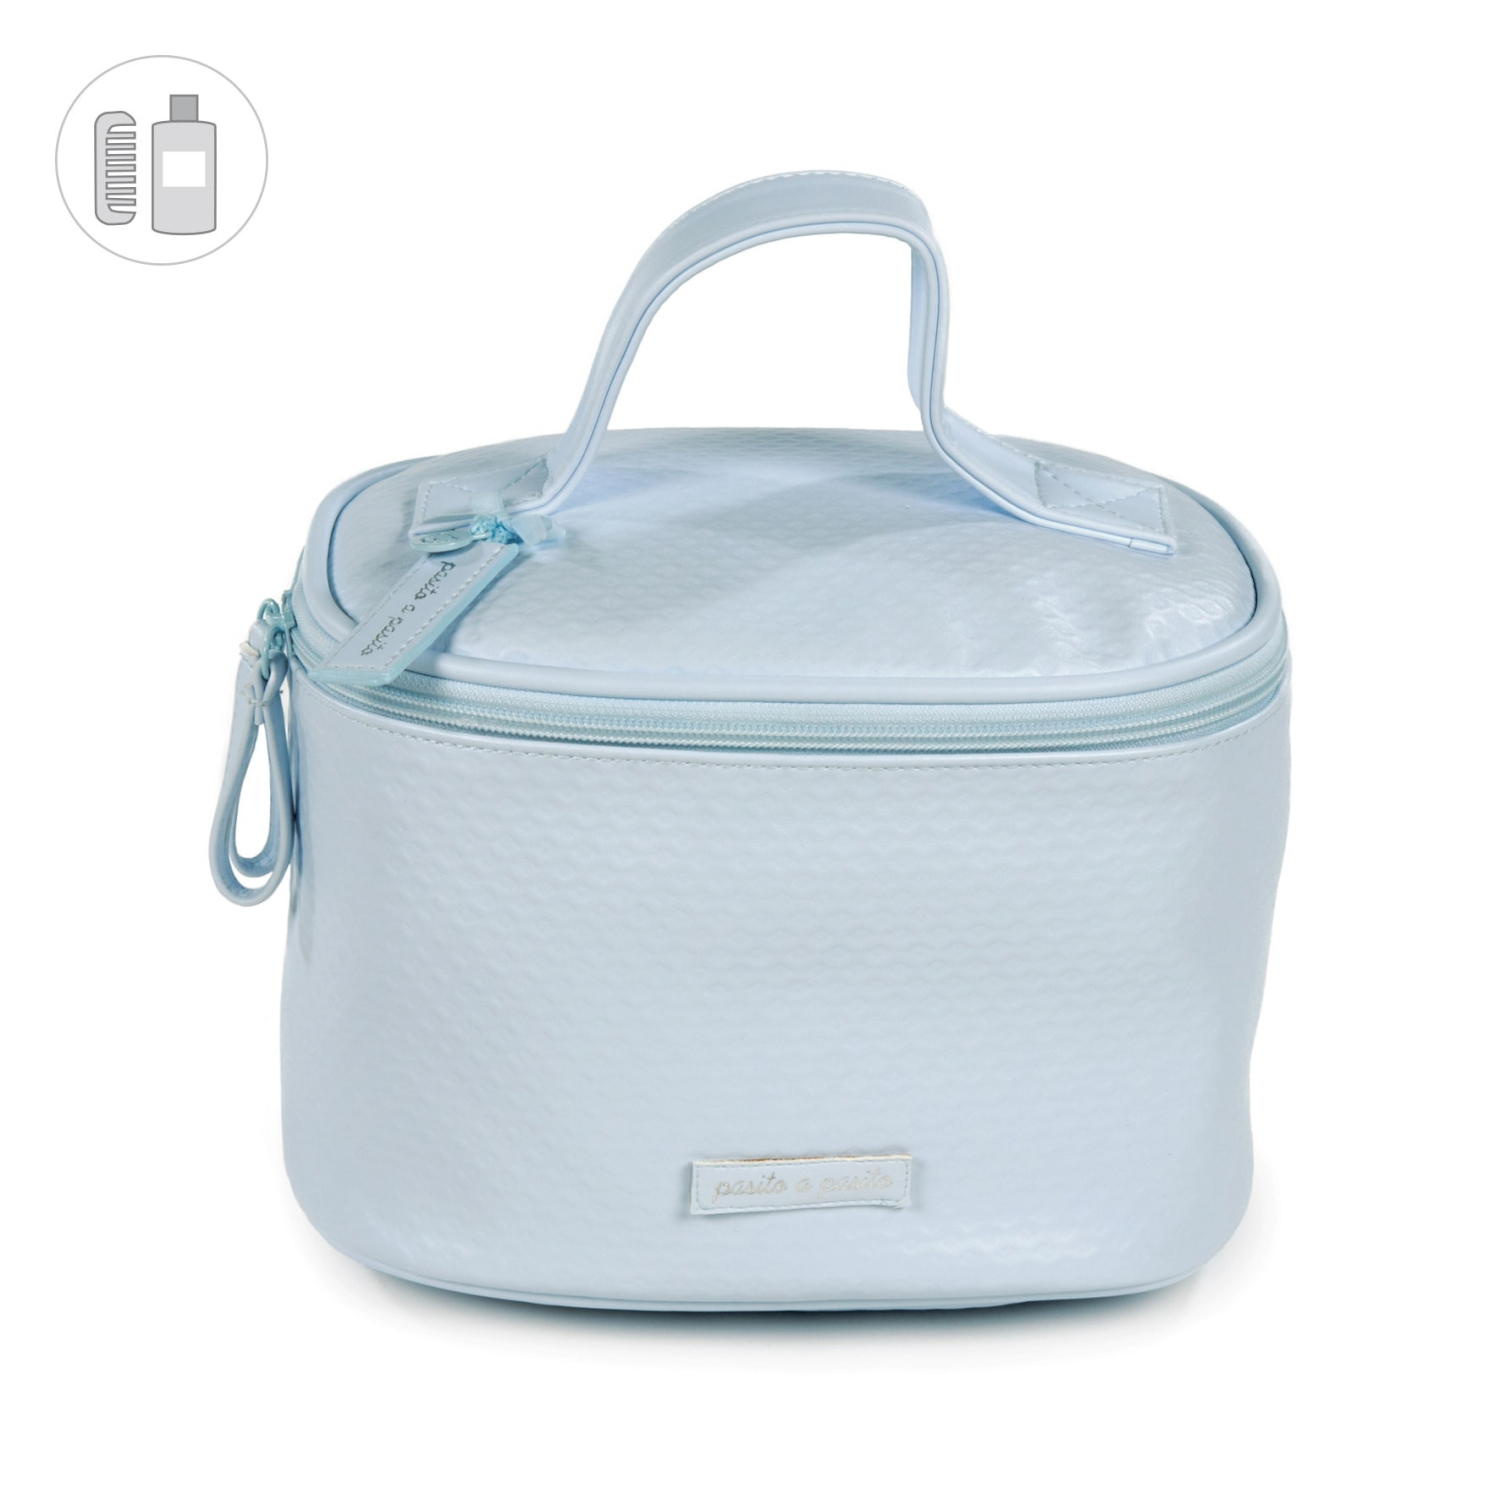 Pasito a Pasito Vanity-Case Biscuit Bleu